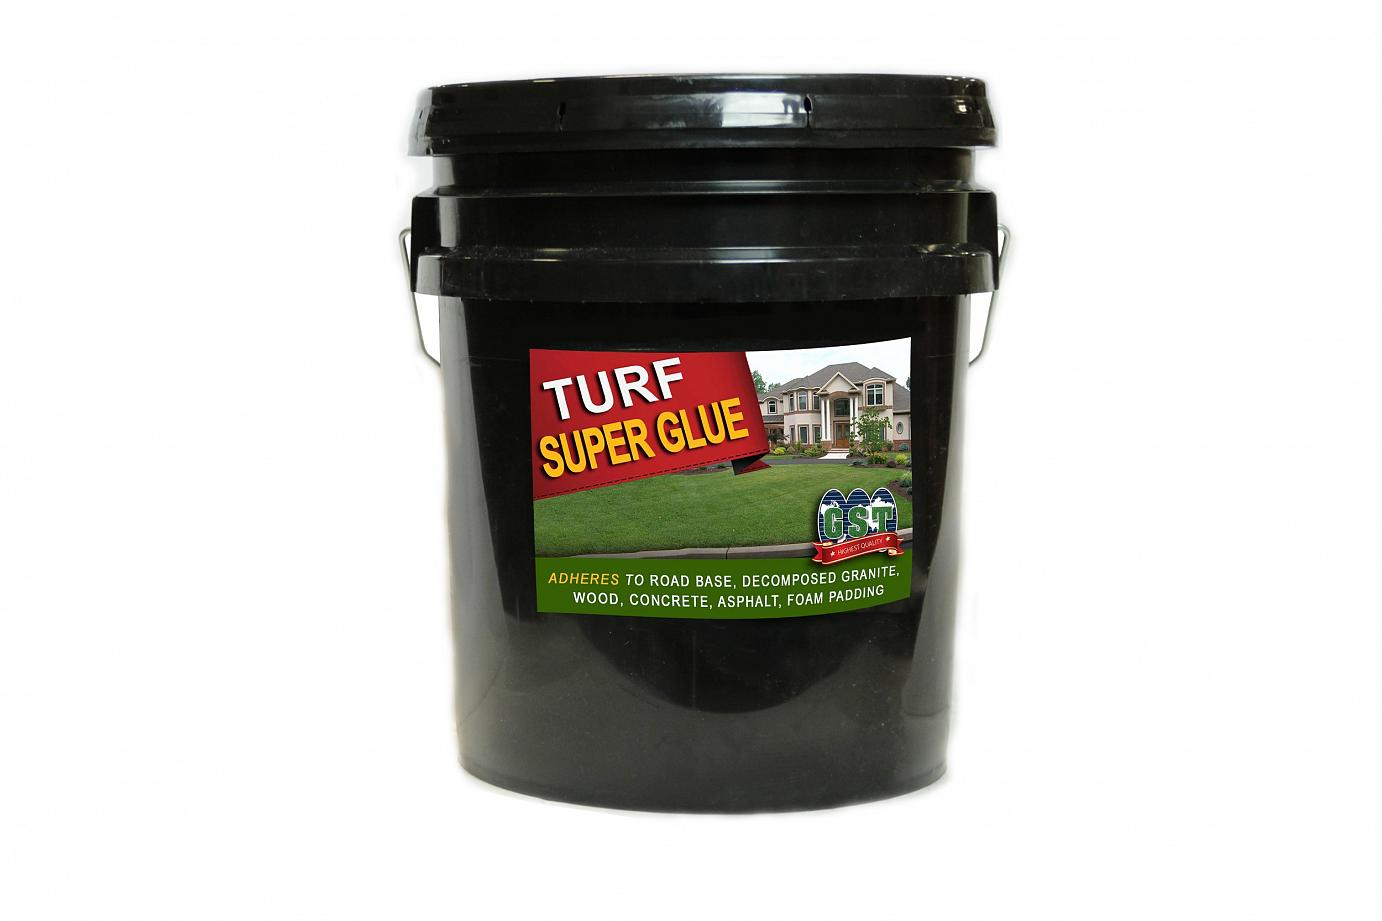 Turf Super Glue 5 Gallons Artificial Grass Orlando Florida Synthetic Grass Tools Installation Orlando